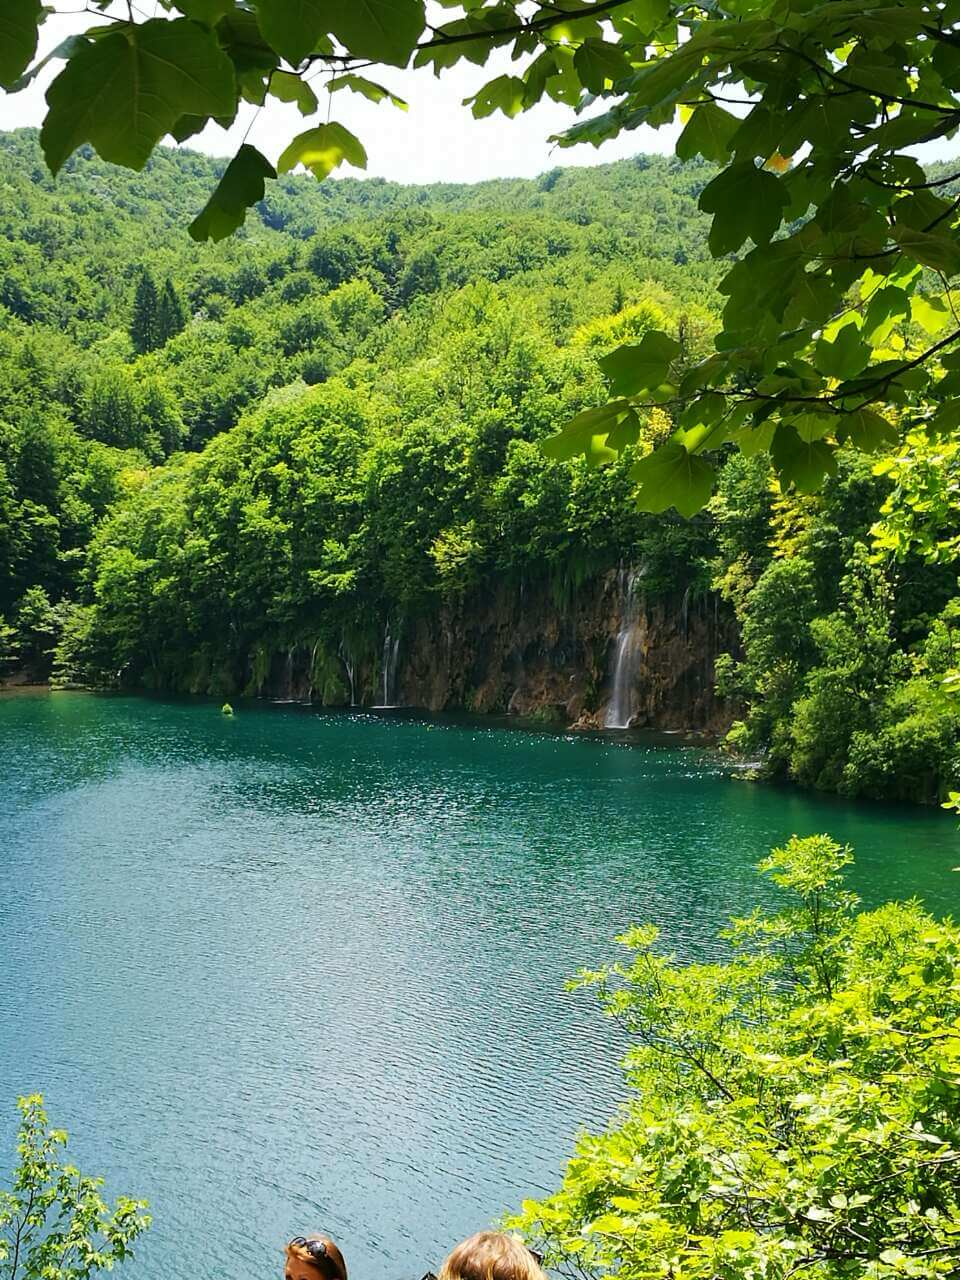 View of green trees and a lake at Plitvice Lakes national park